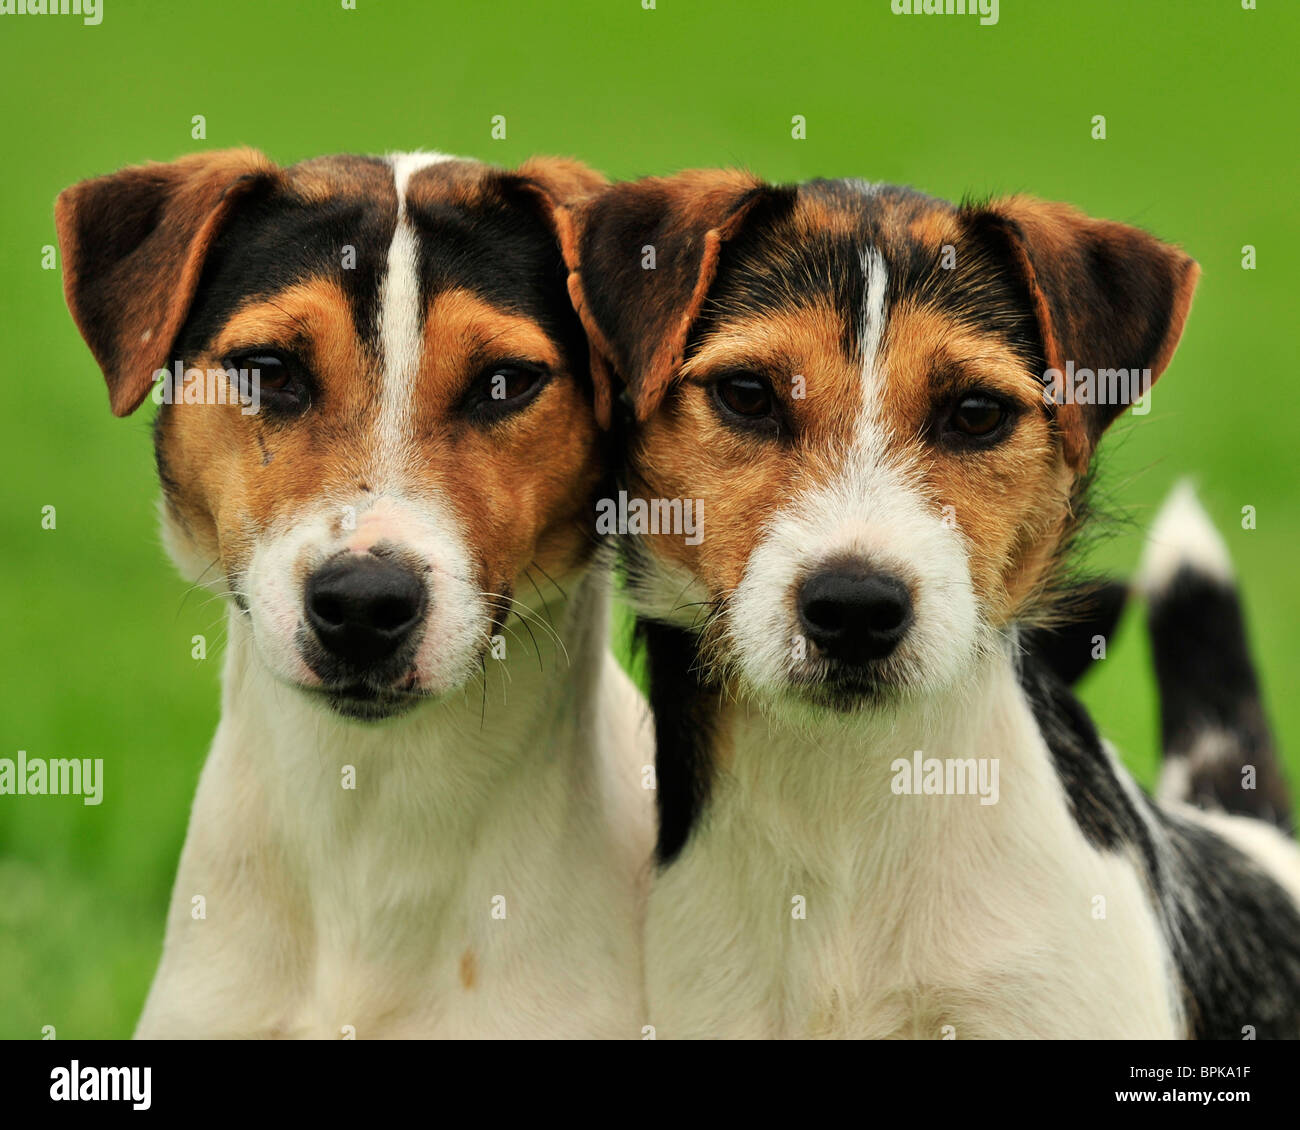 jack russell terrier dogs - Stock Image